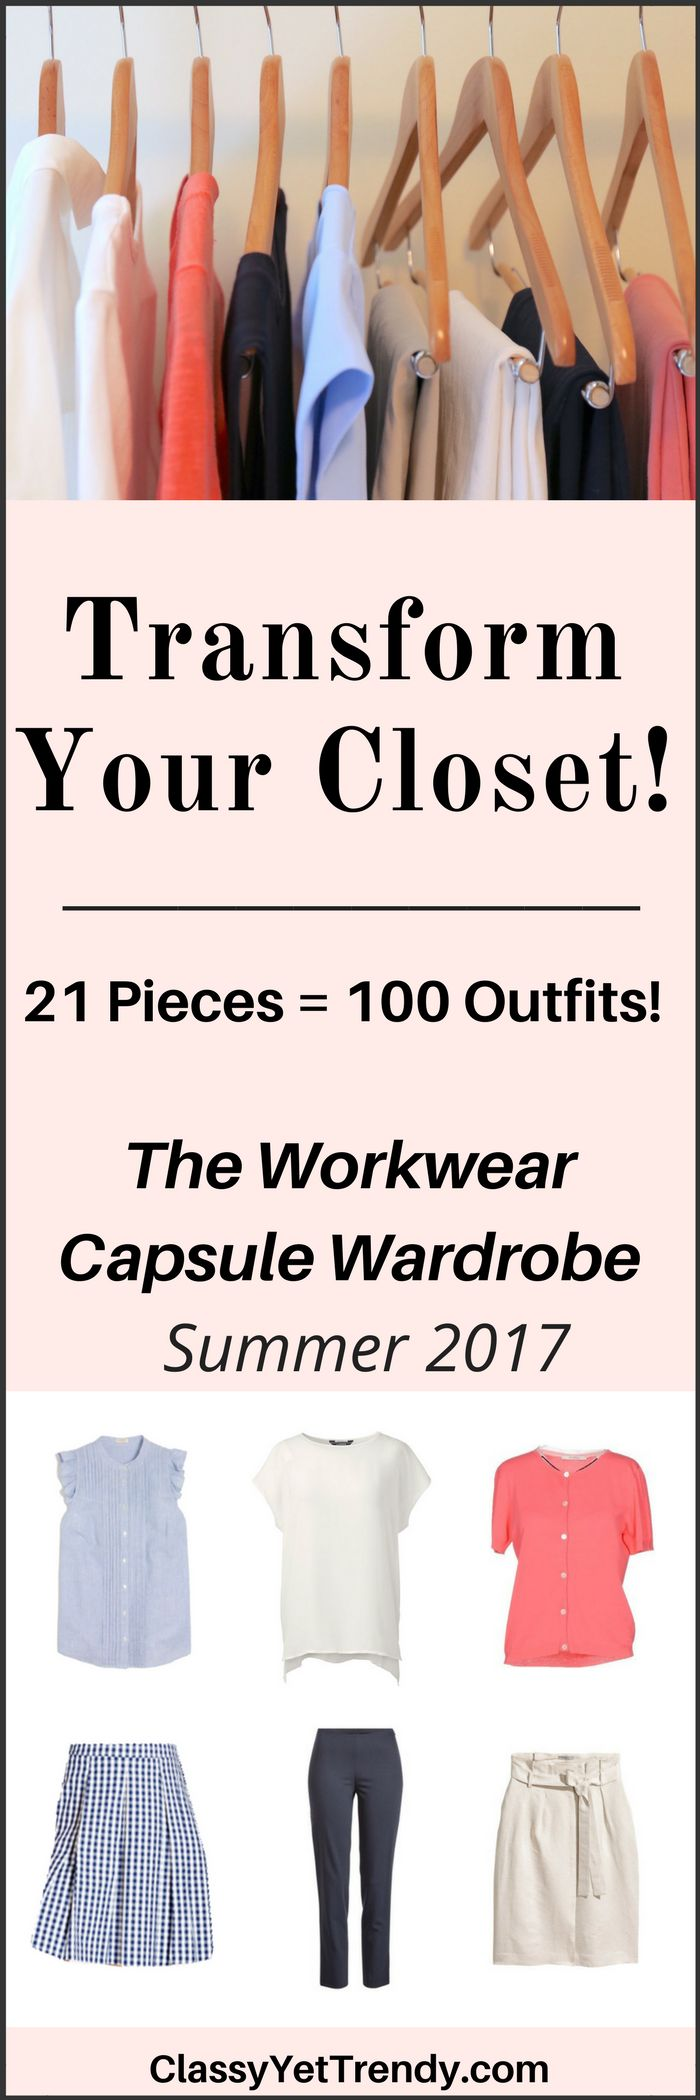 The Workwear Summer 2017 Capsule Wardrobe e-book - Transform your closet! It will show you how to mix and match clothes and shoes to create dozens of outfit ideas that you will love! You probably have several of these clothes and shoes in your closet already. Create the closet of your dreams today with this handy guide!